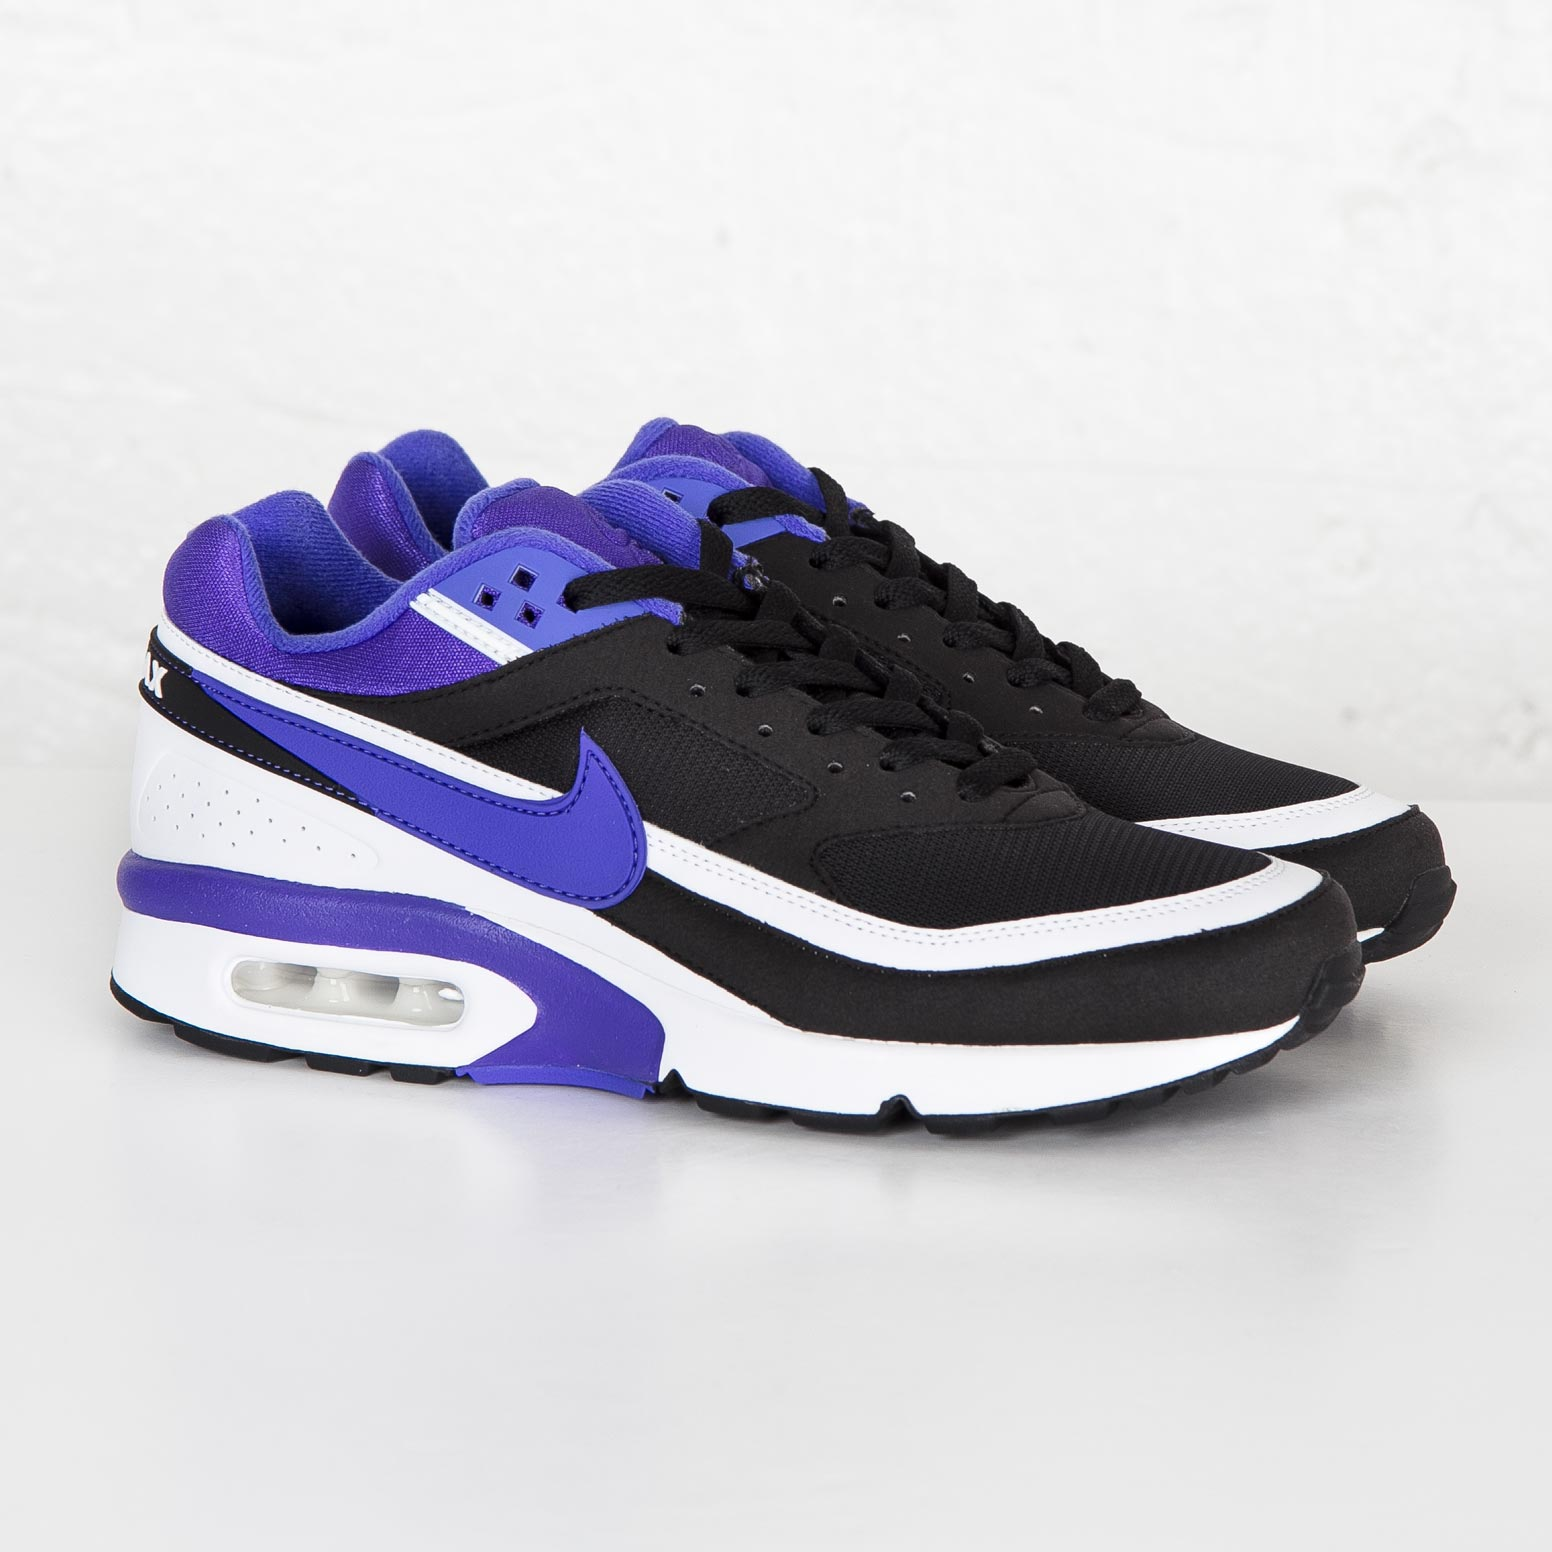 95664a49444fb Nike Air Max BW OG - 819522-051 - Sneakersnstuff | sneakers ...